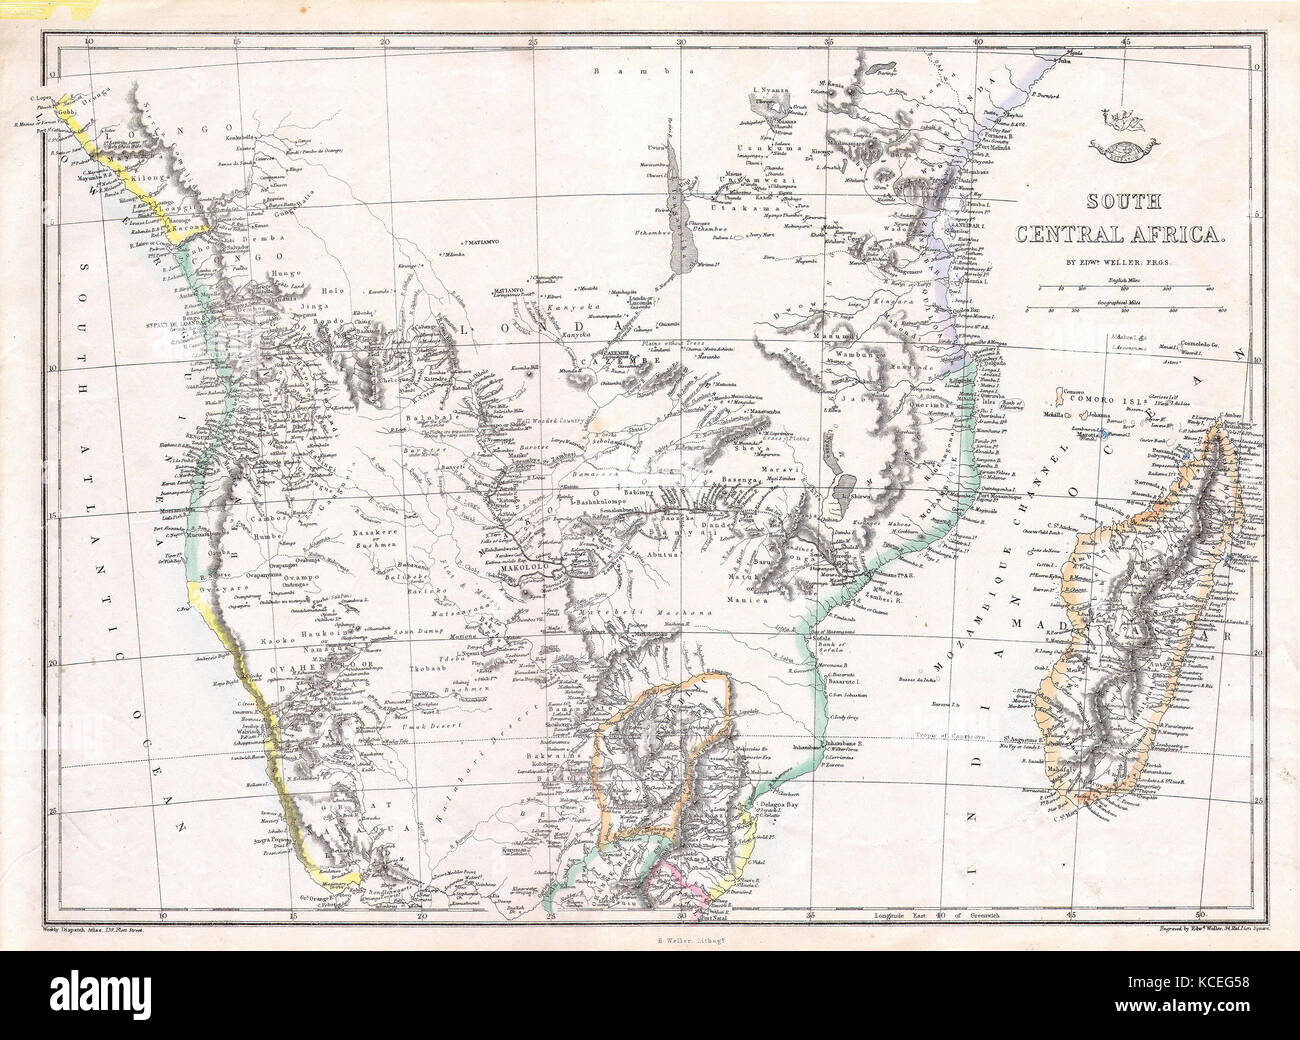 1868, Dispatch, Weller Map of South Central Africa, Angola, Botswana, Tanzania, etc - Stock Image